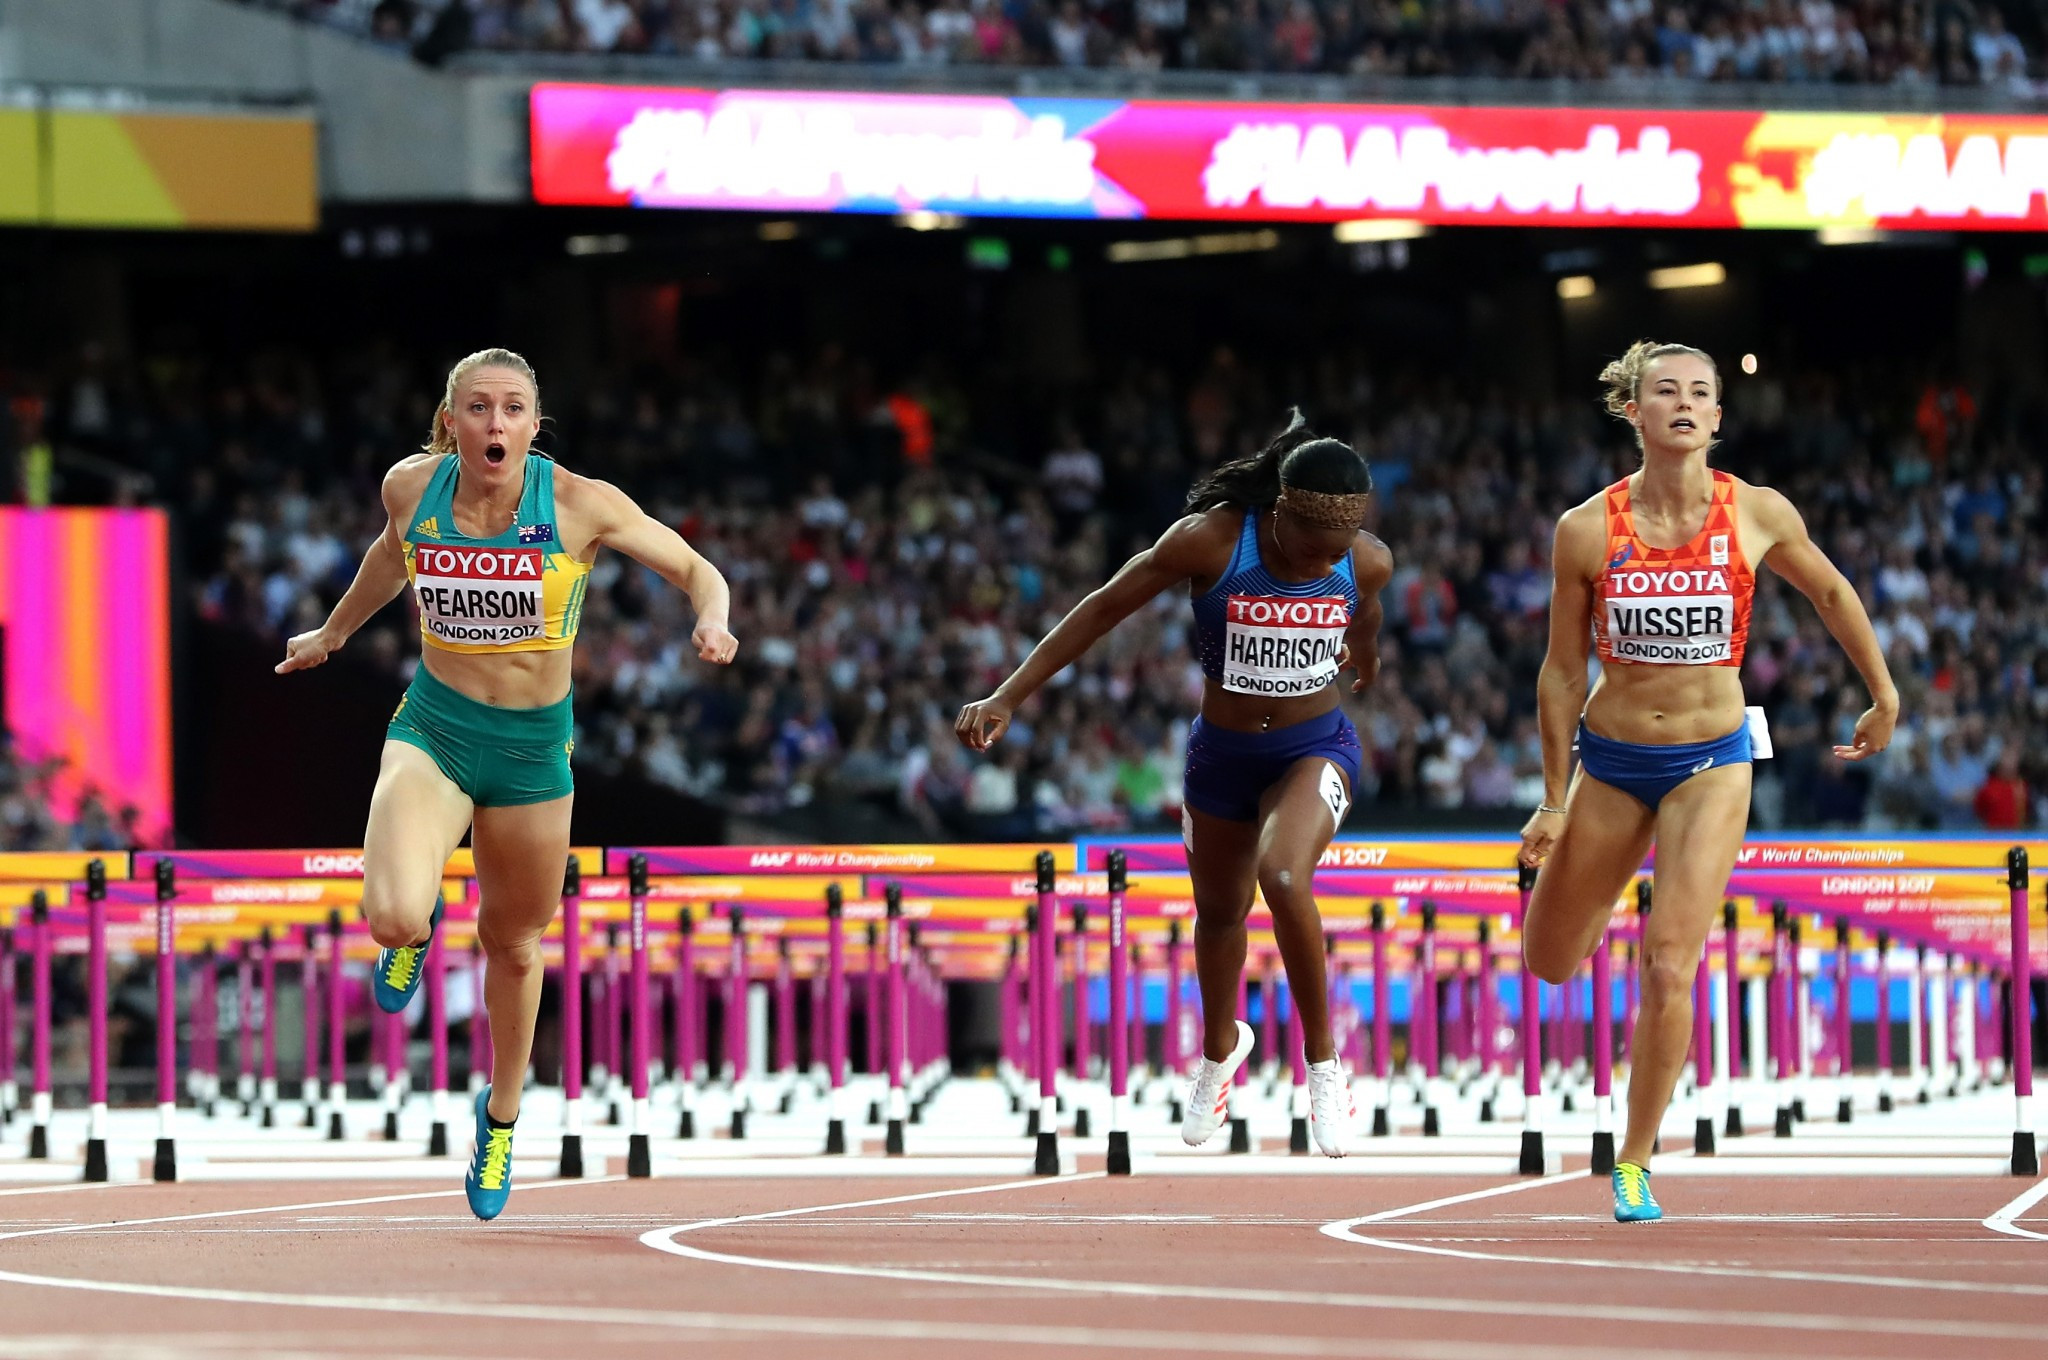 Sally Pearson completed a remarkable comeback with victory in the women's 100m hurdles ©Getty Images